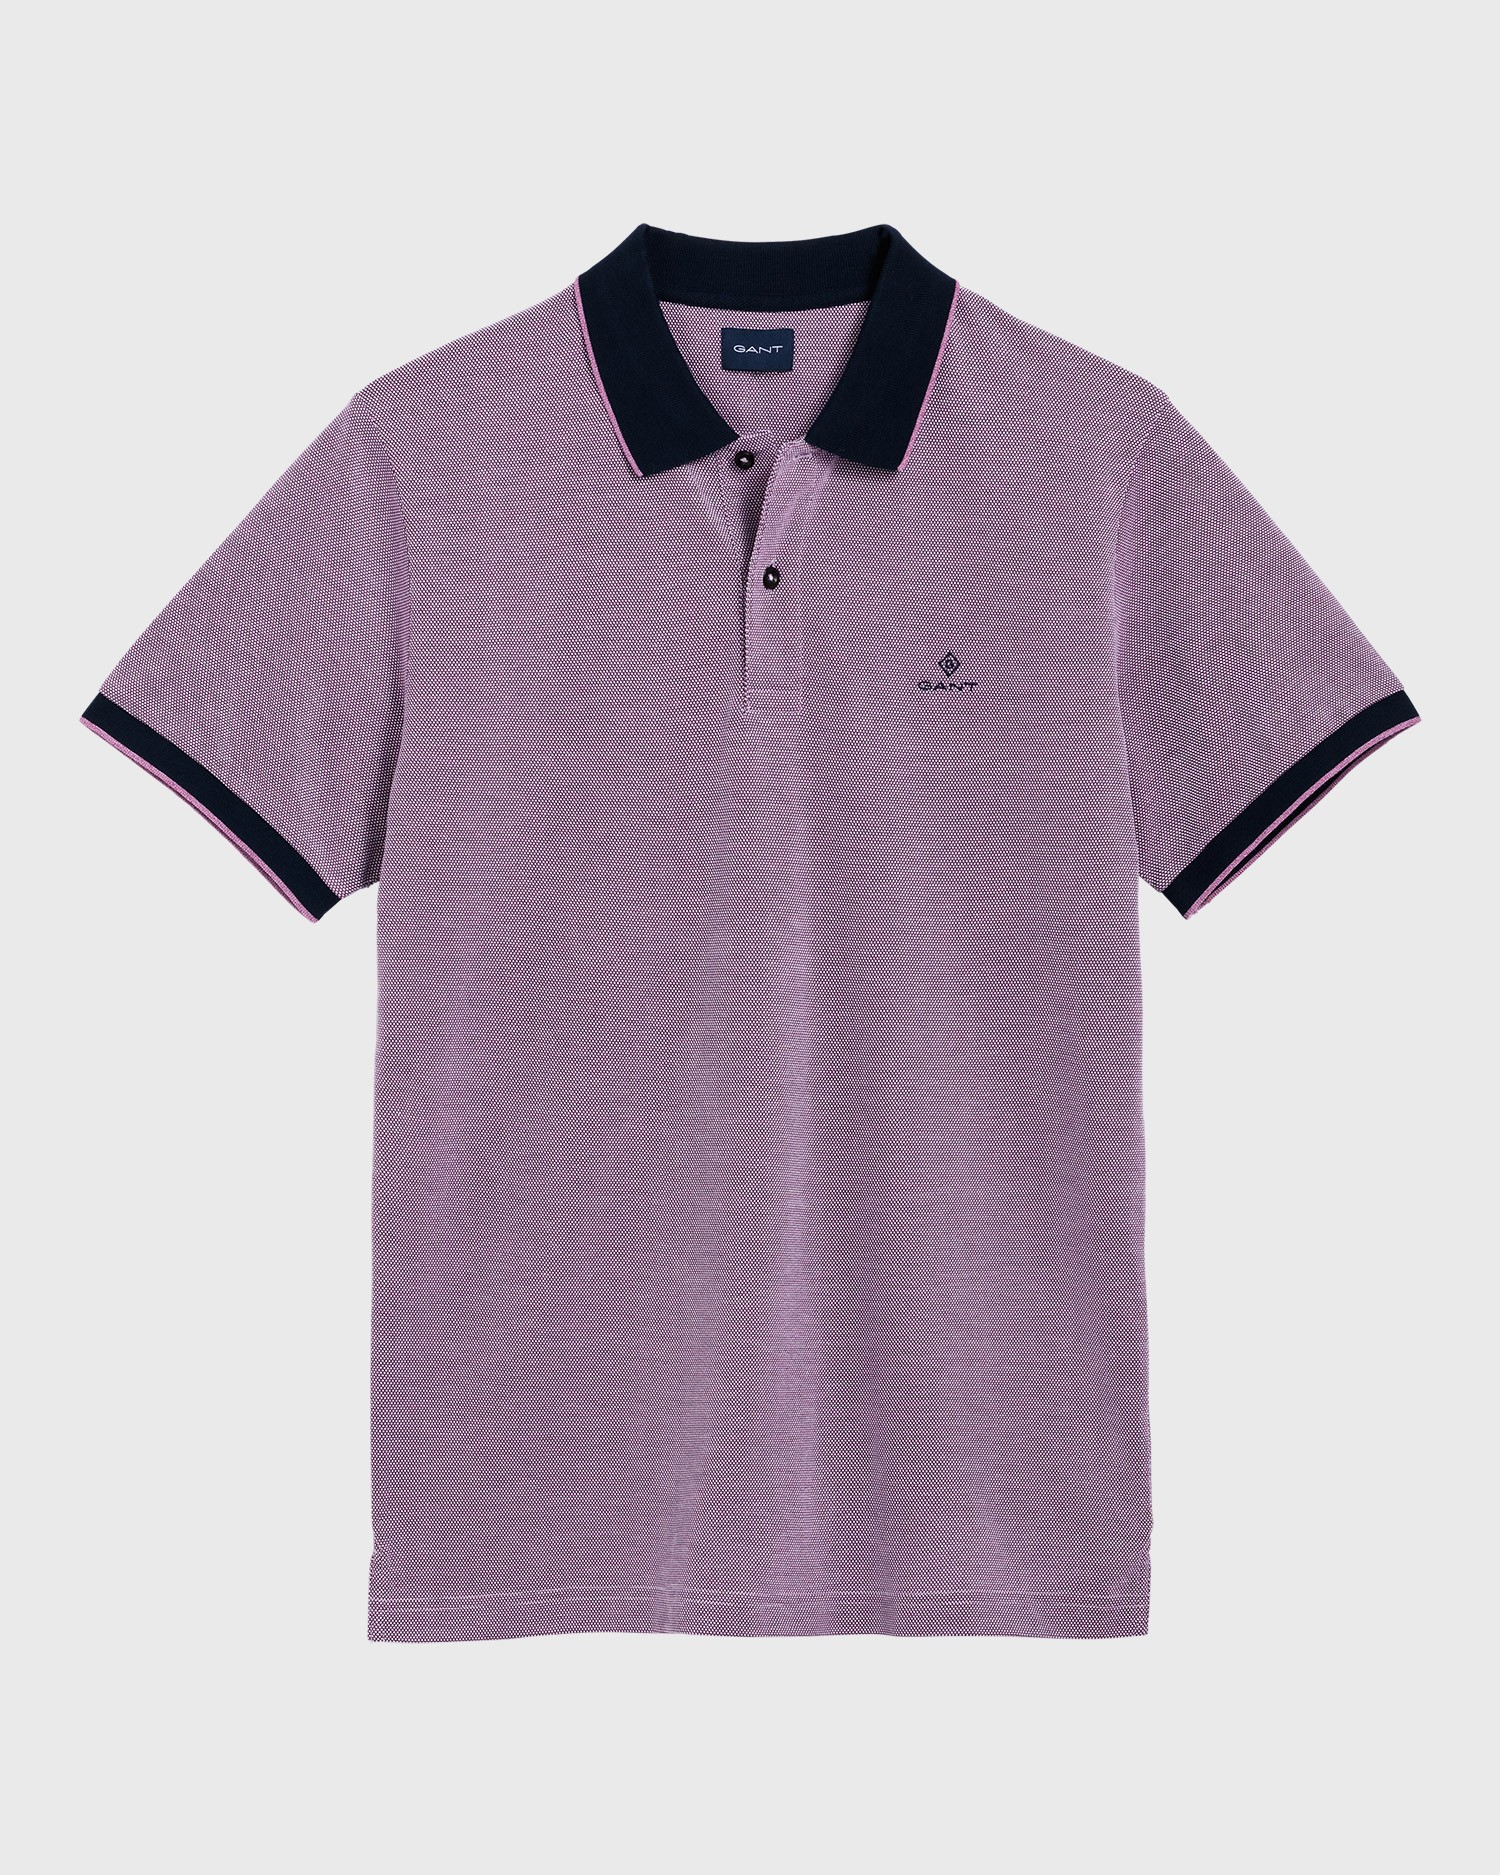 GANT Erkek Mor Regular Fit Pique Rugger Polo - 2012012